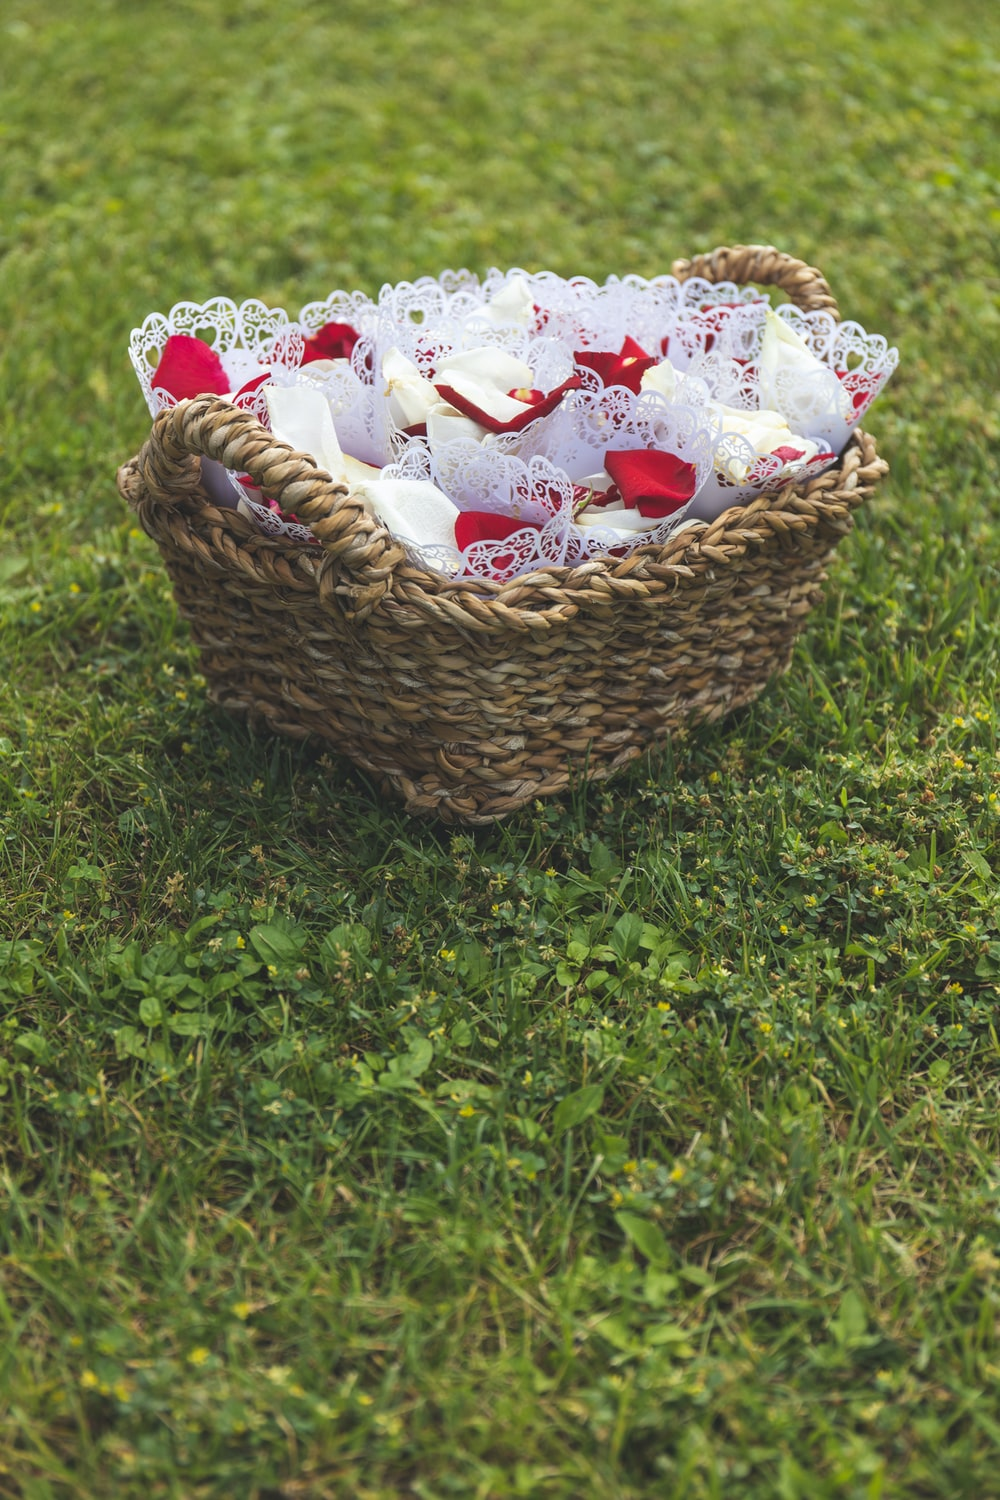 white-and-red party favors on brown wicket basket